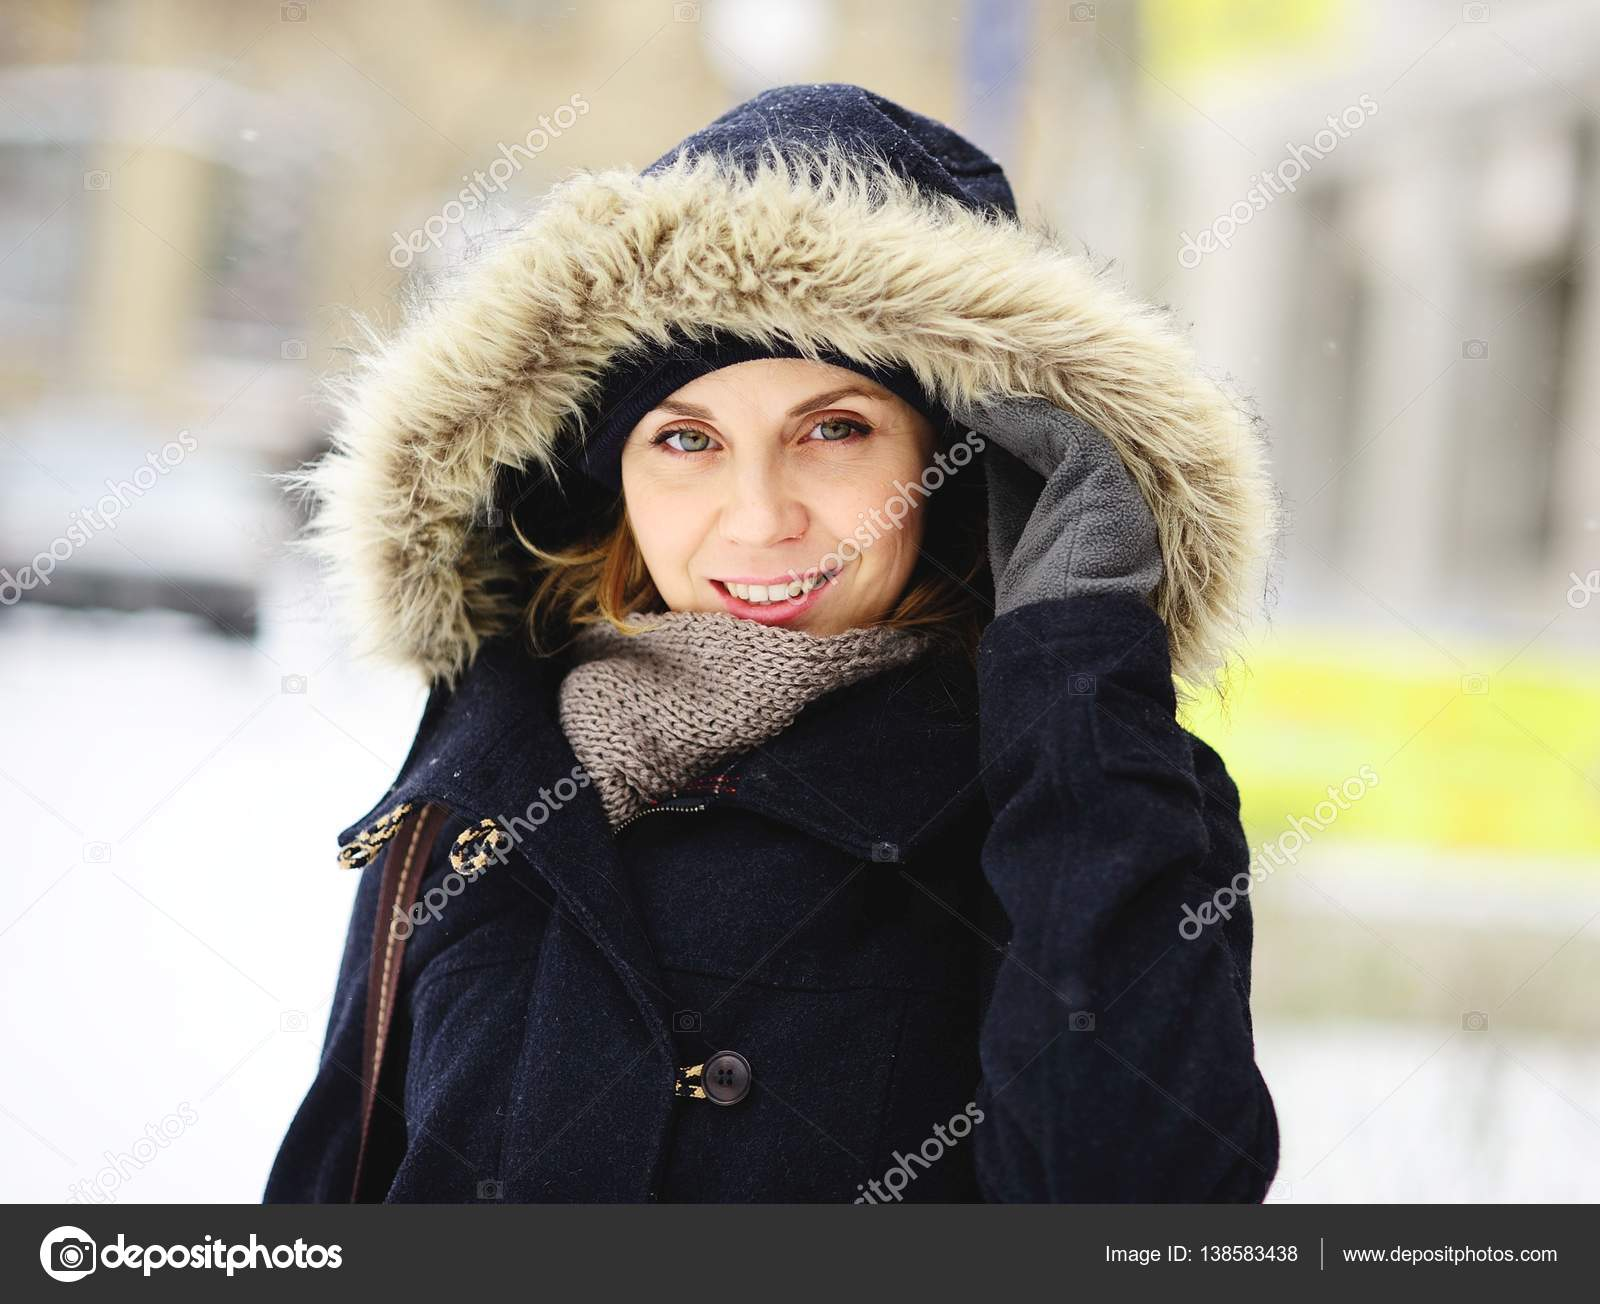 faadf7da70580 Portrait of the beautiful young woman in a winter coat with fur hood. —  Stock